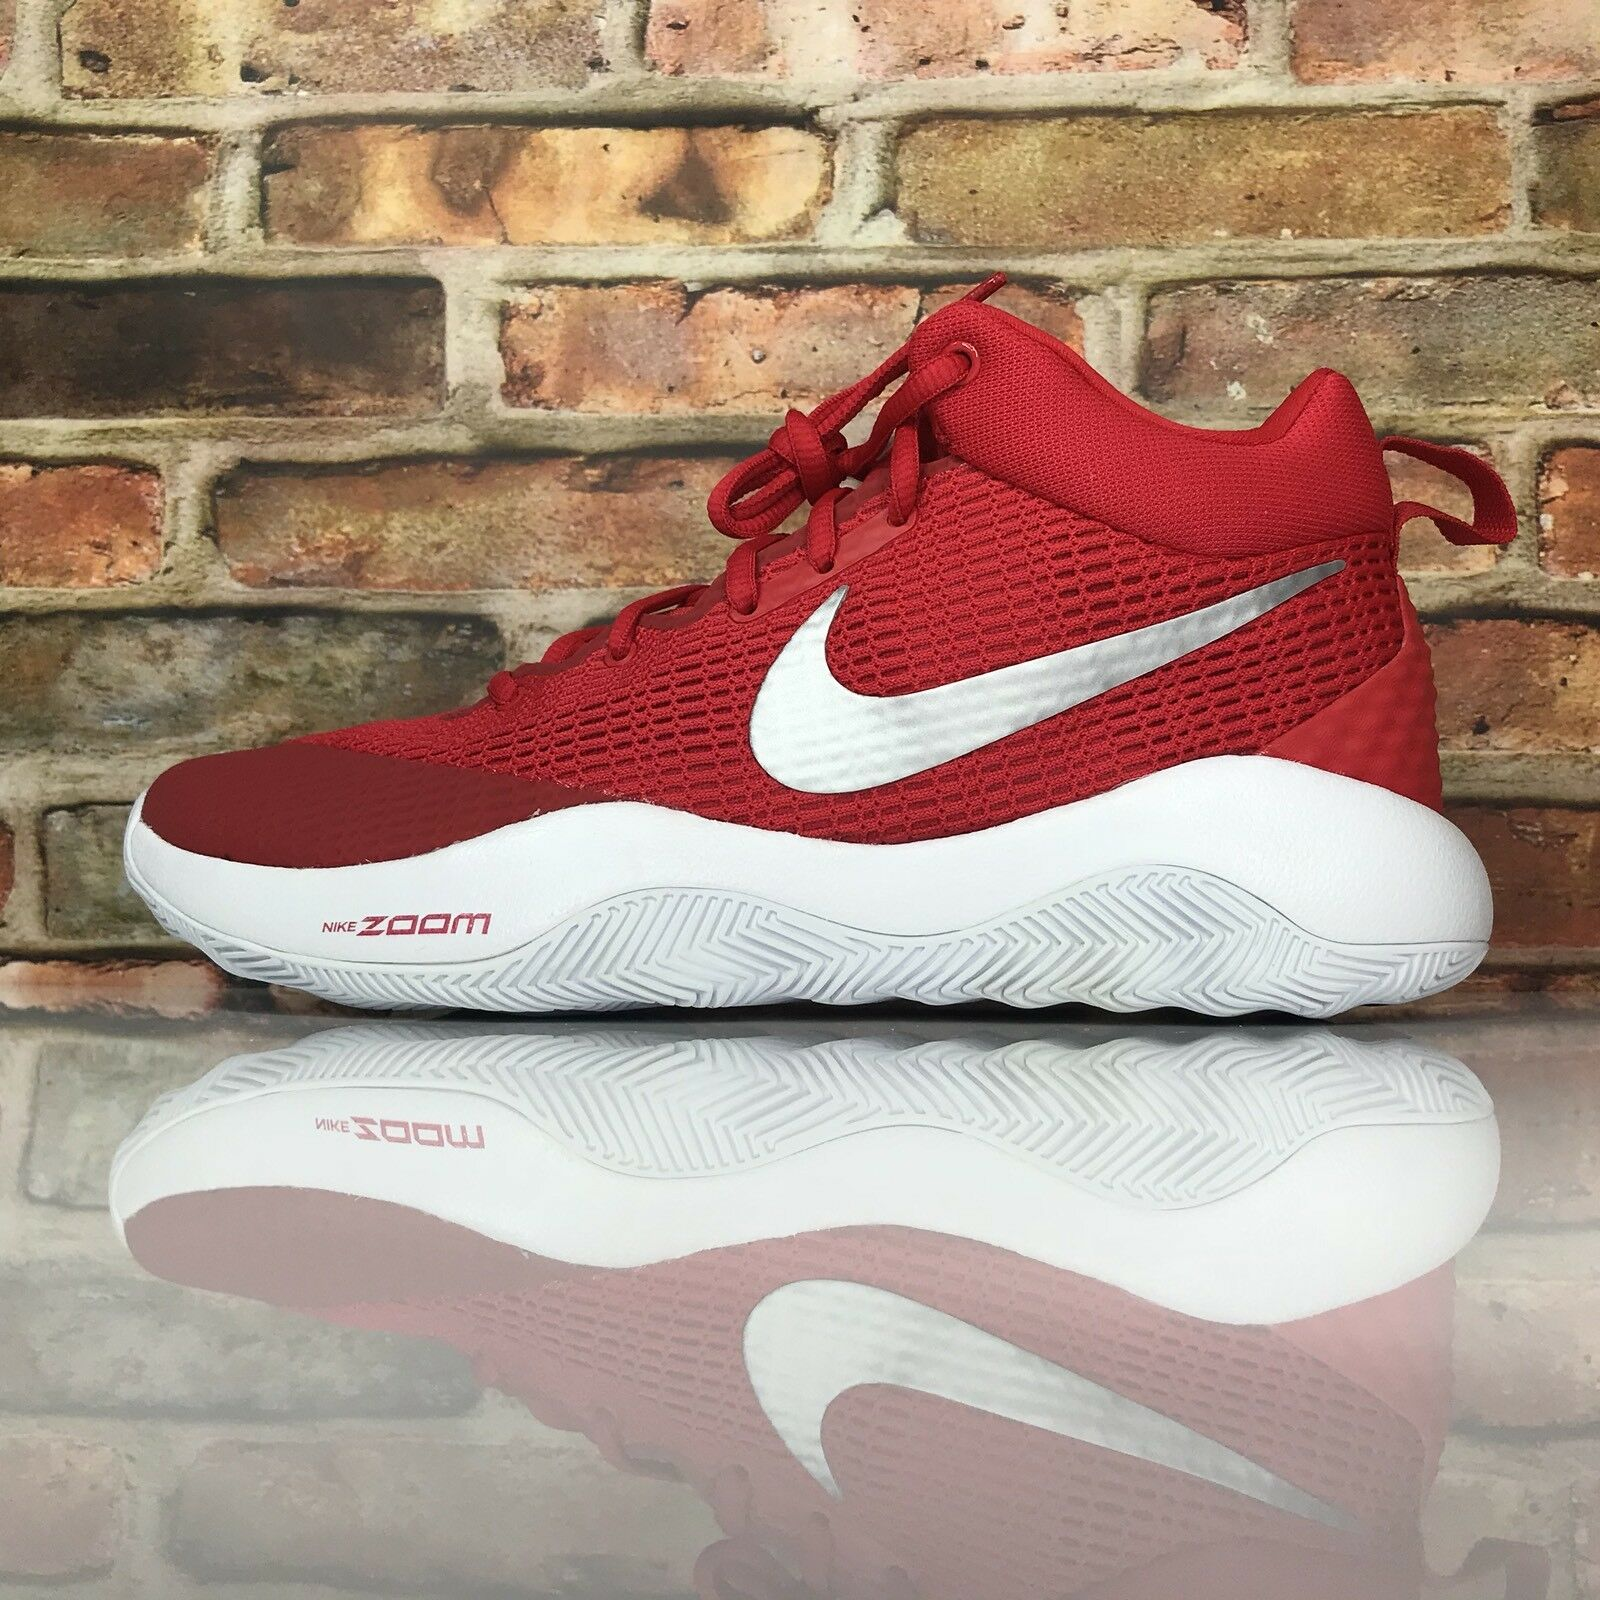 New shoes for men and women, limited time discount Nike Mens Basketball Shoes Zoom Rev TB Comfortable